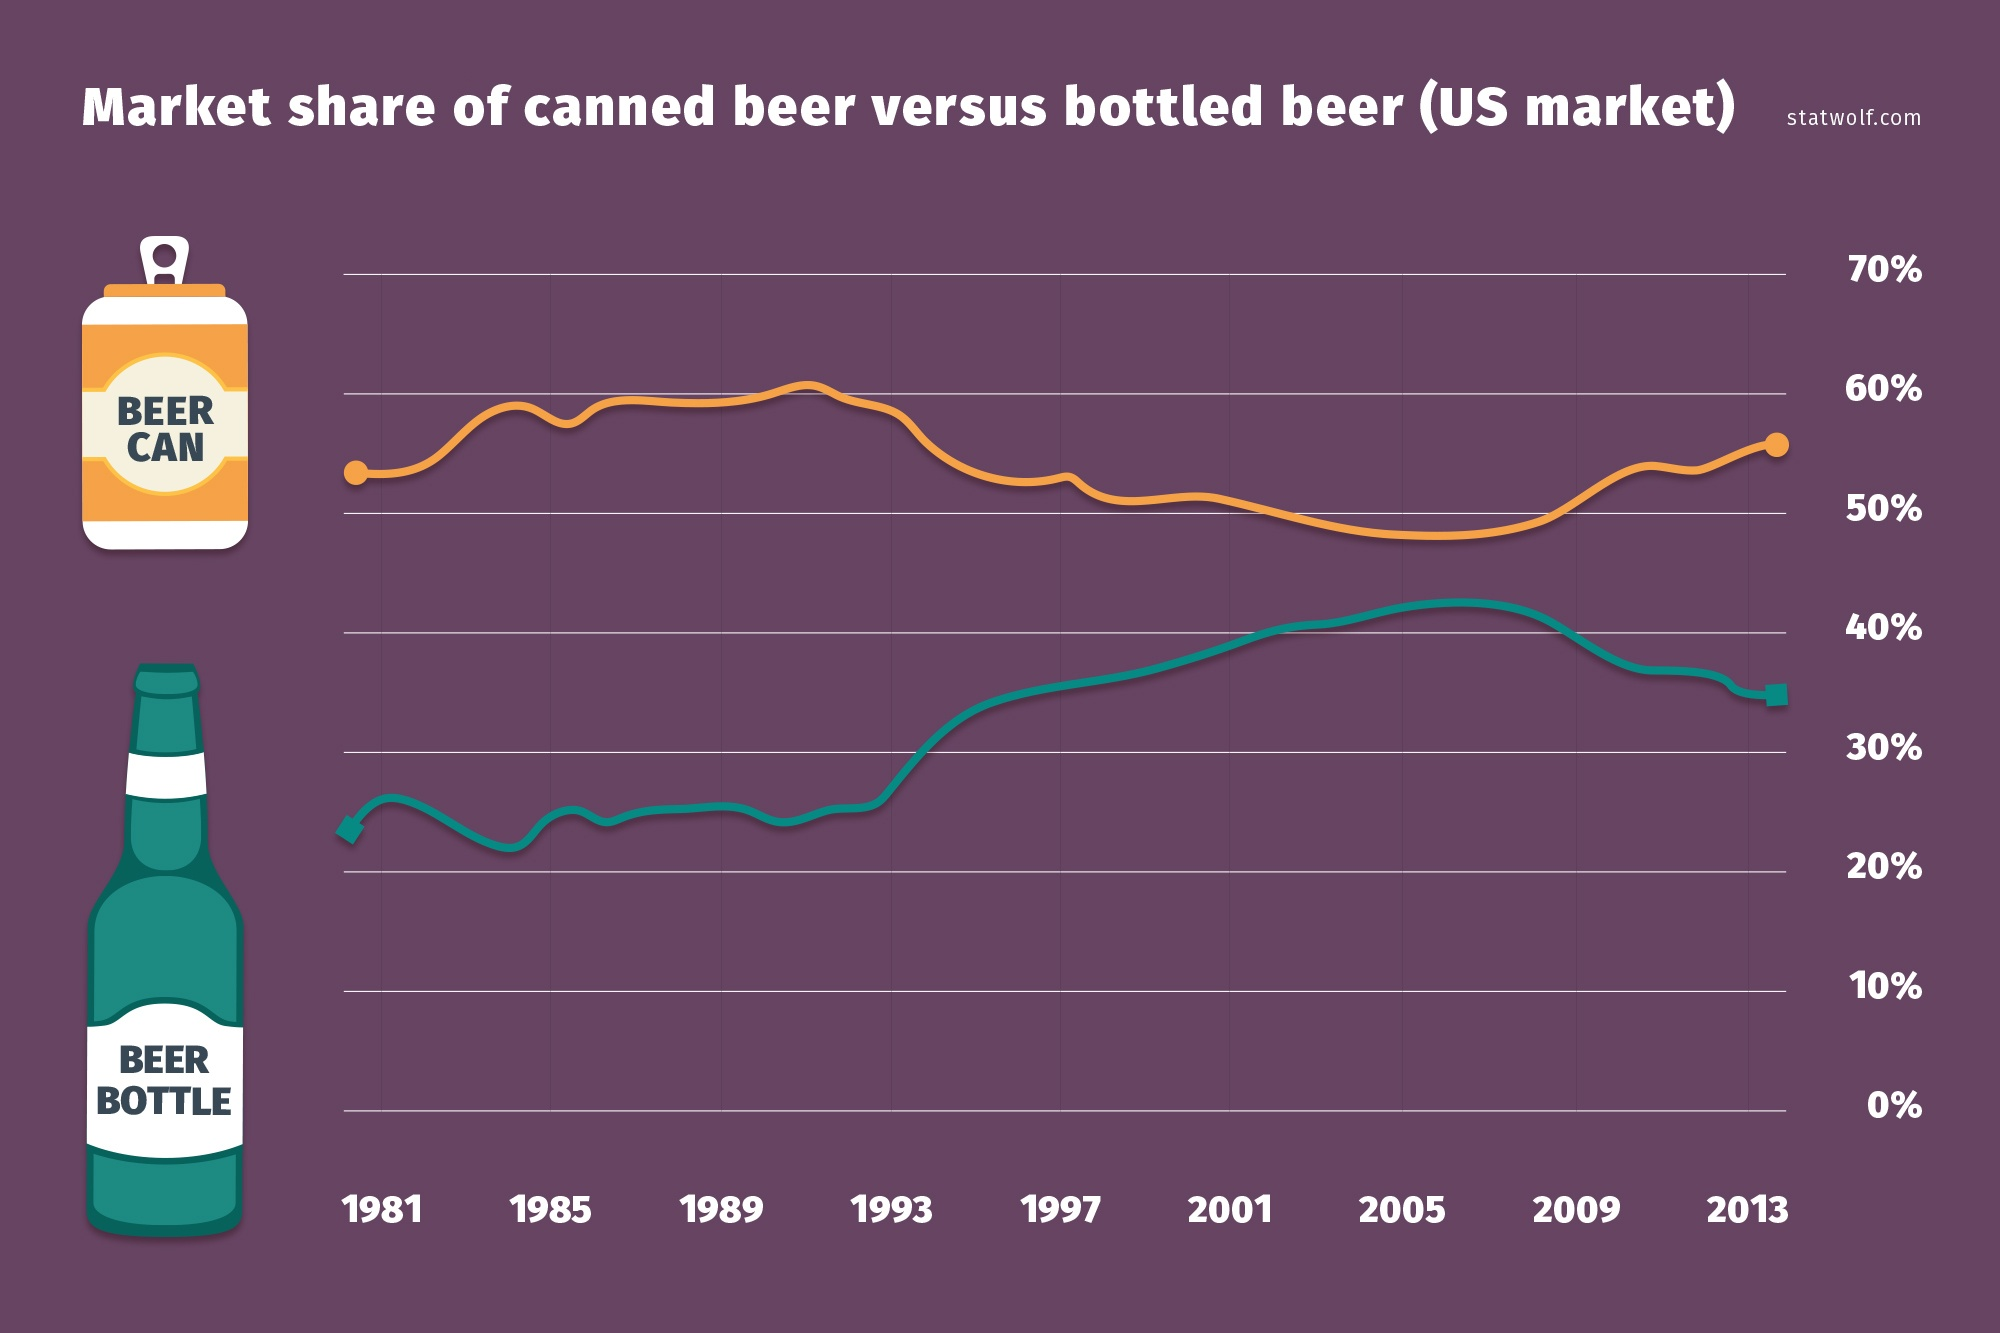 Market Share Of Canned Beer Versus Bottled Beer (US Market)